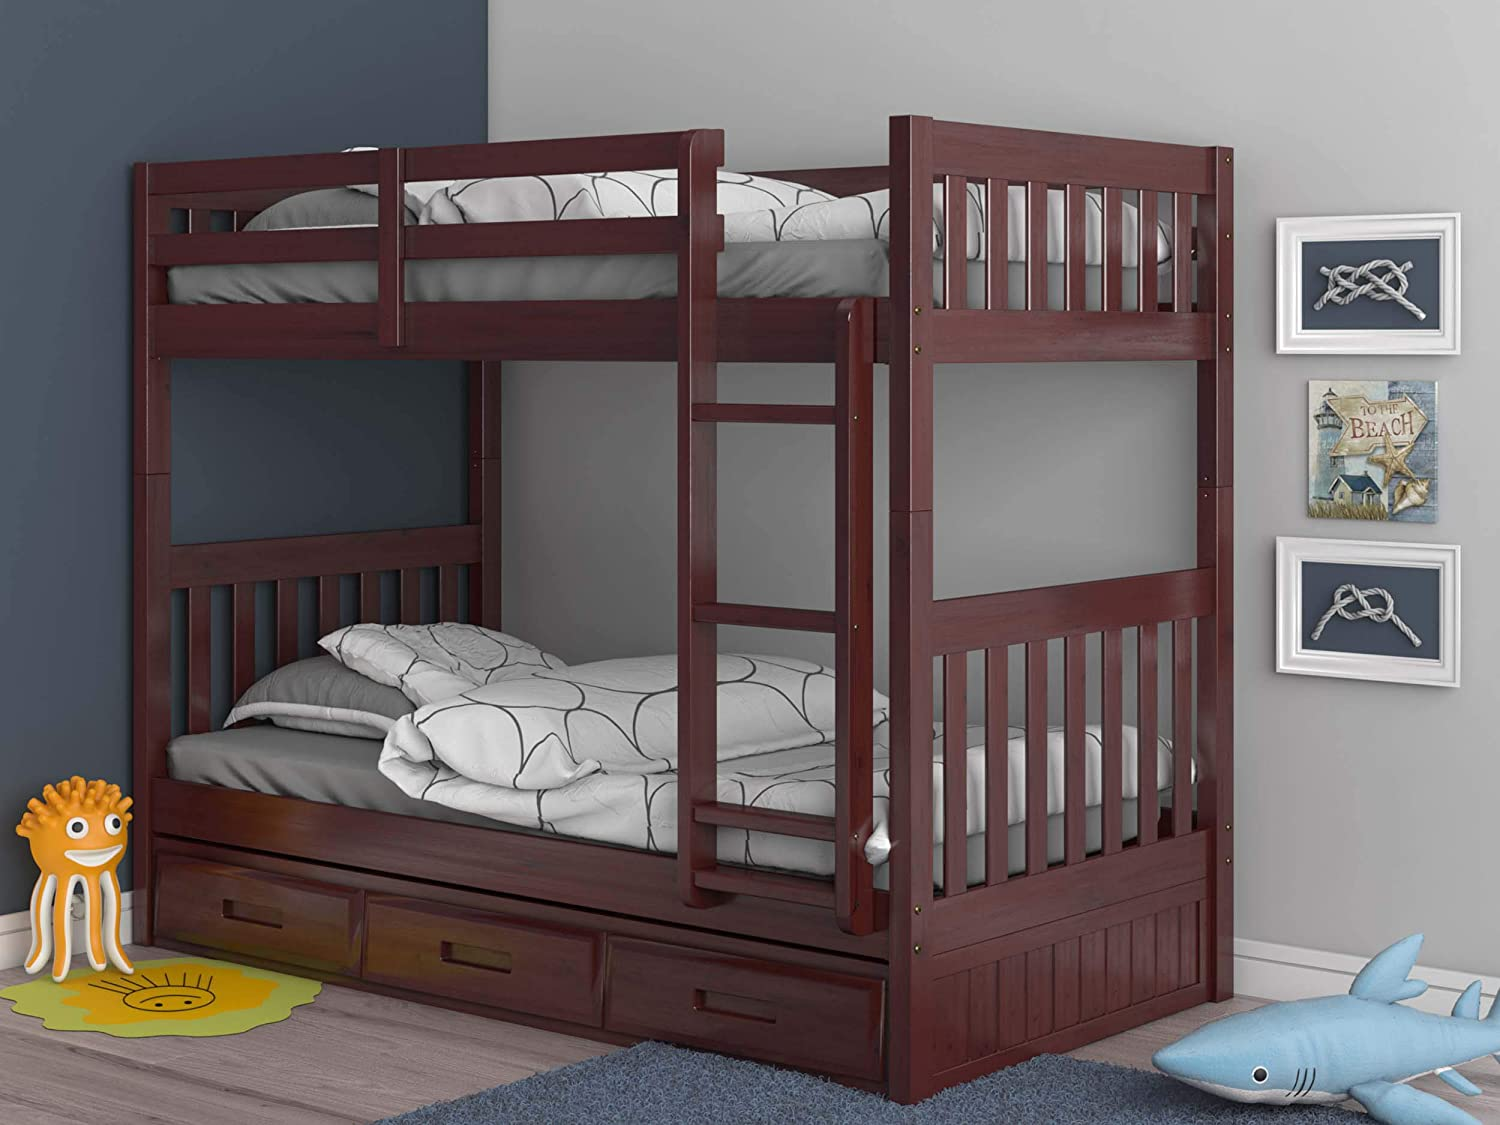 Discovery World Furniture 2810-82892 Bunk Bed, Twin Over Twin, Merlot